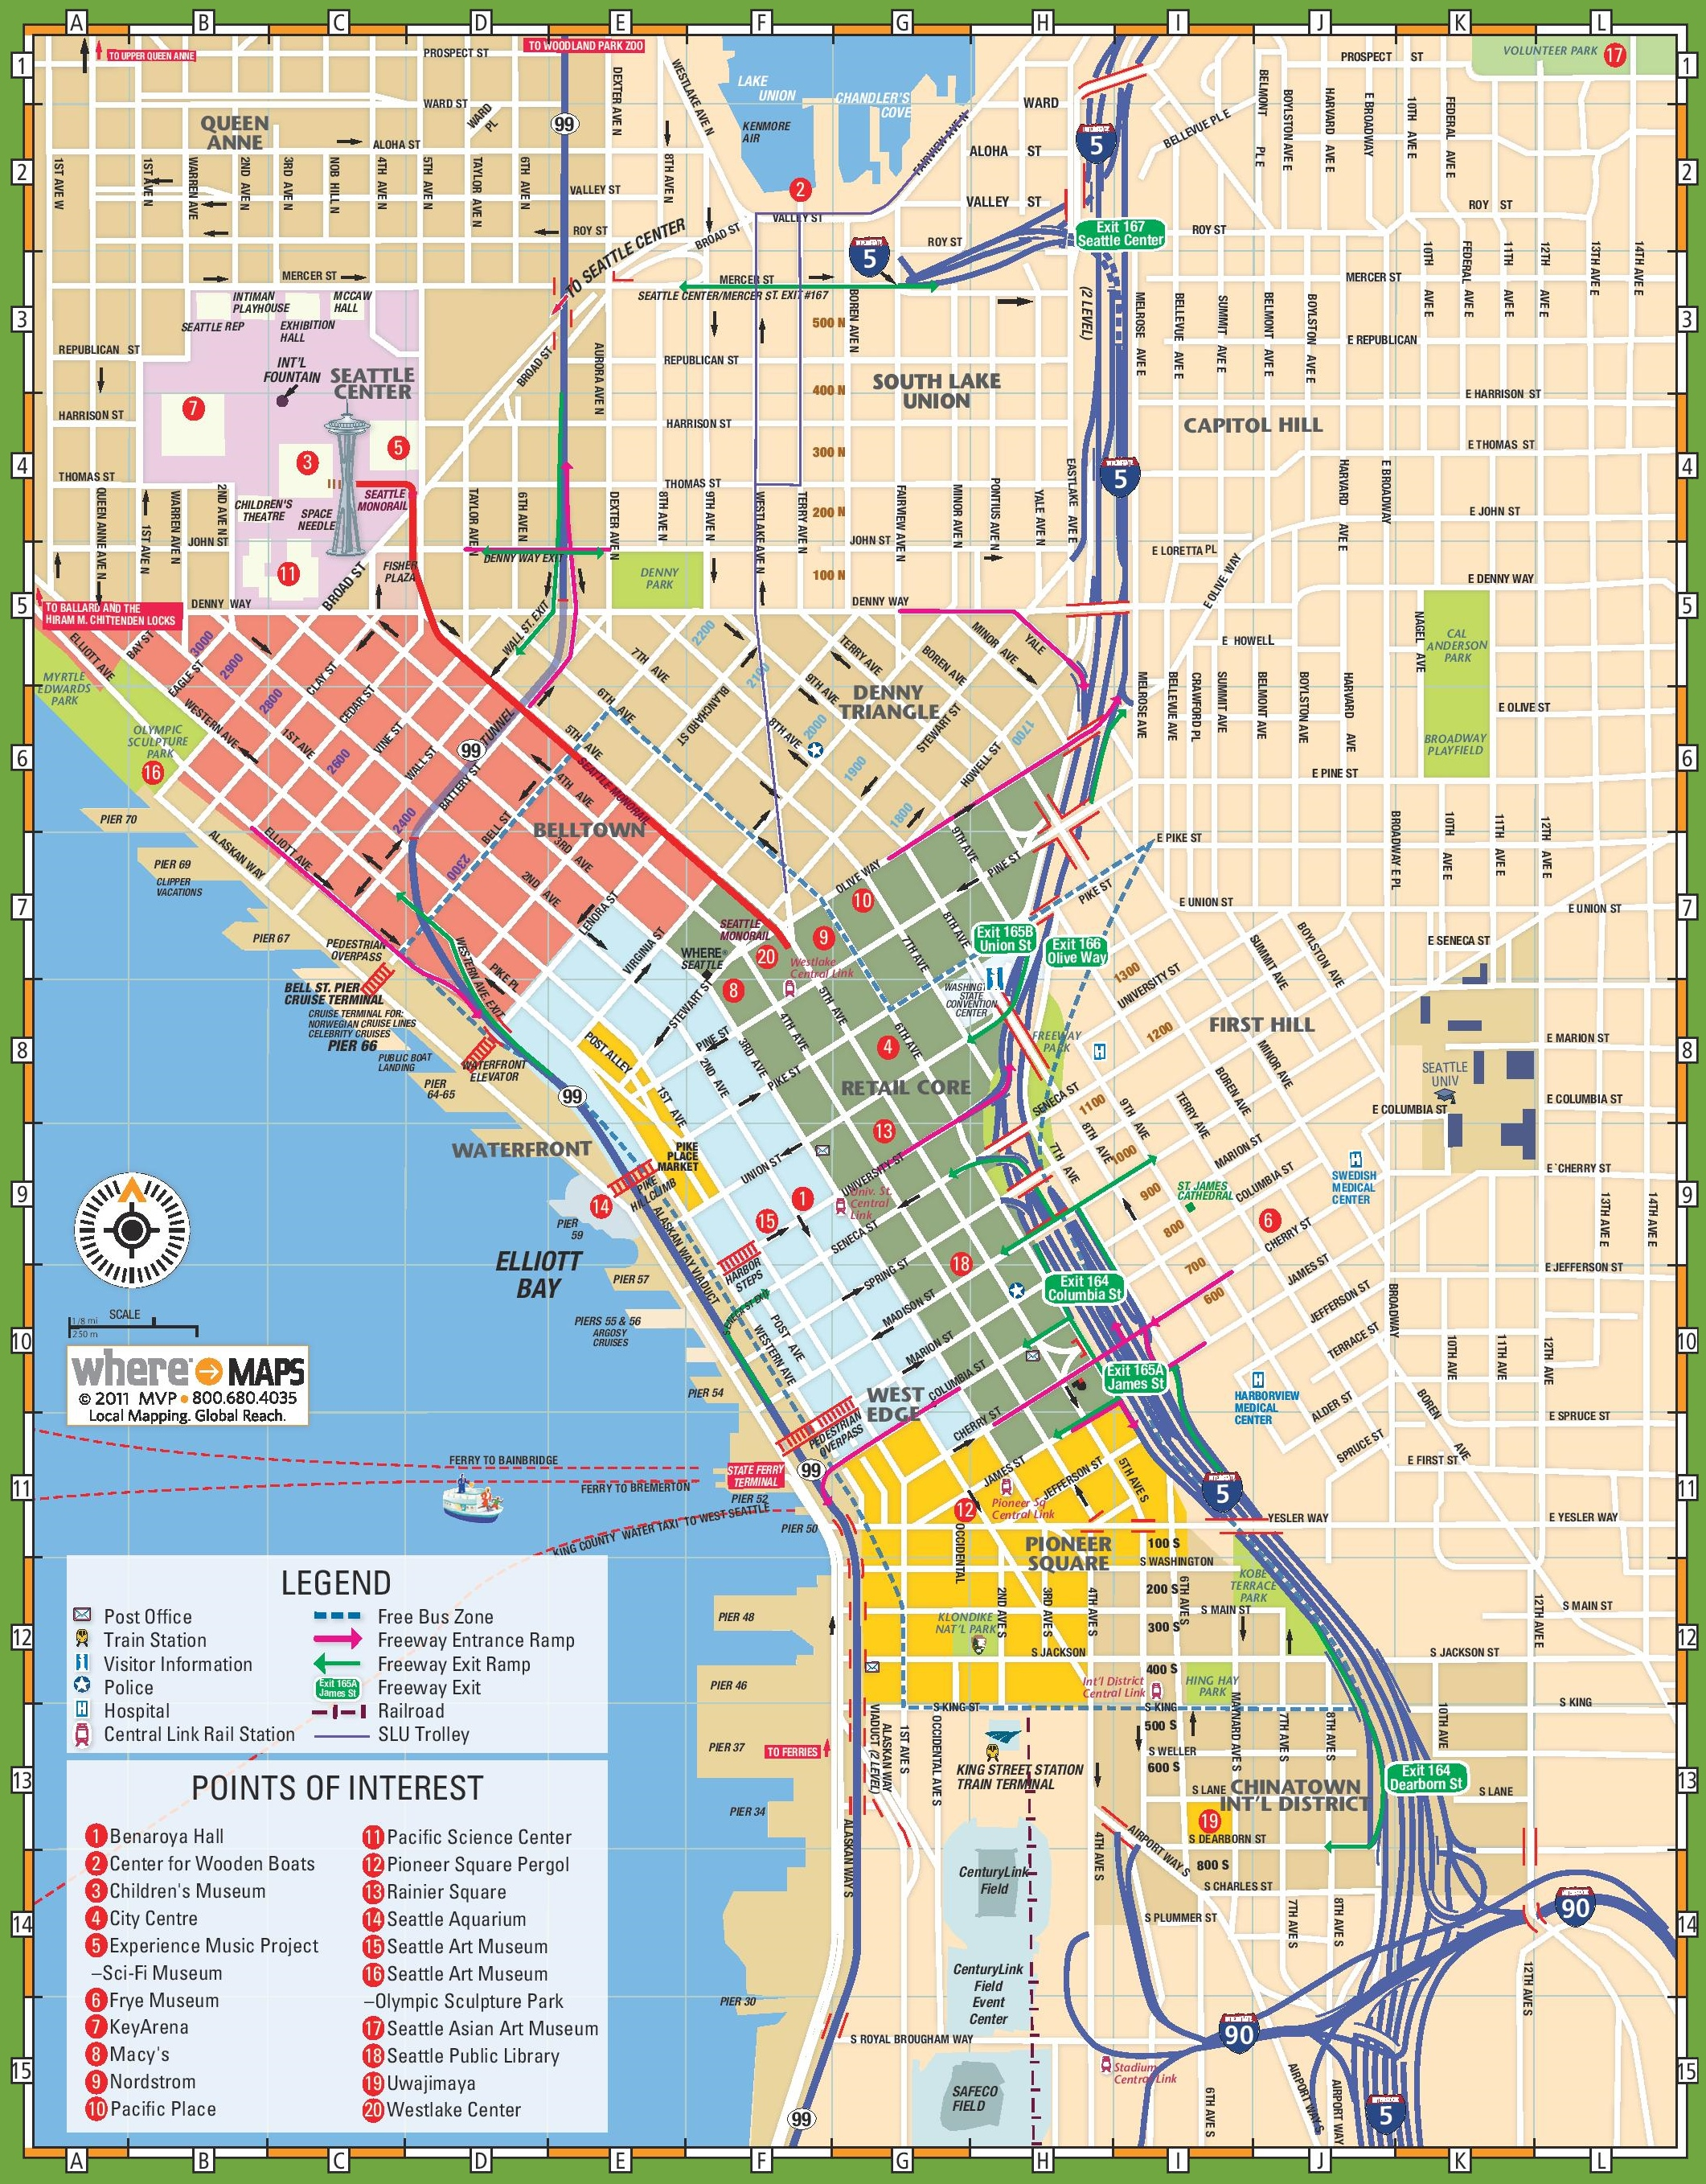 Tourist map of Seattle, Washington, showing location of Seattle Center and the Space Needle